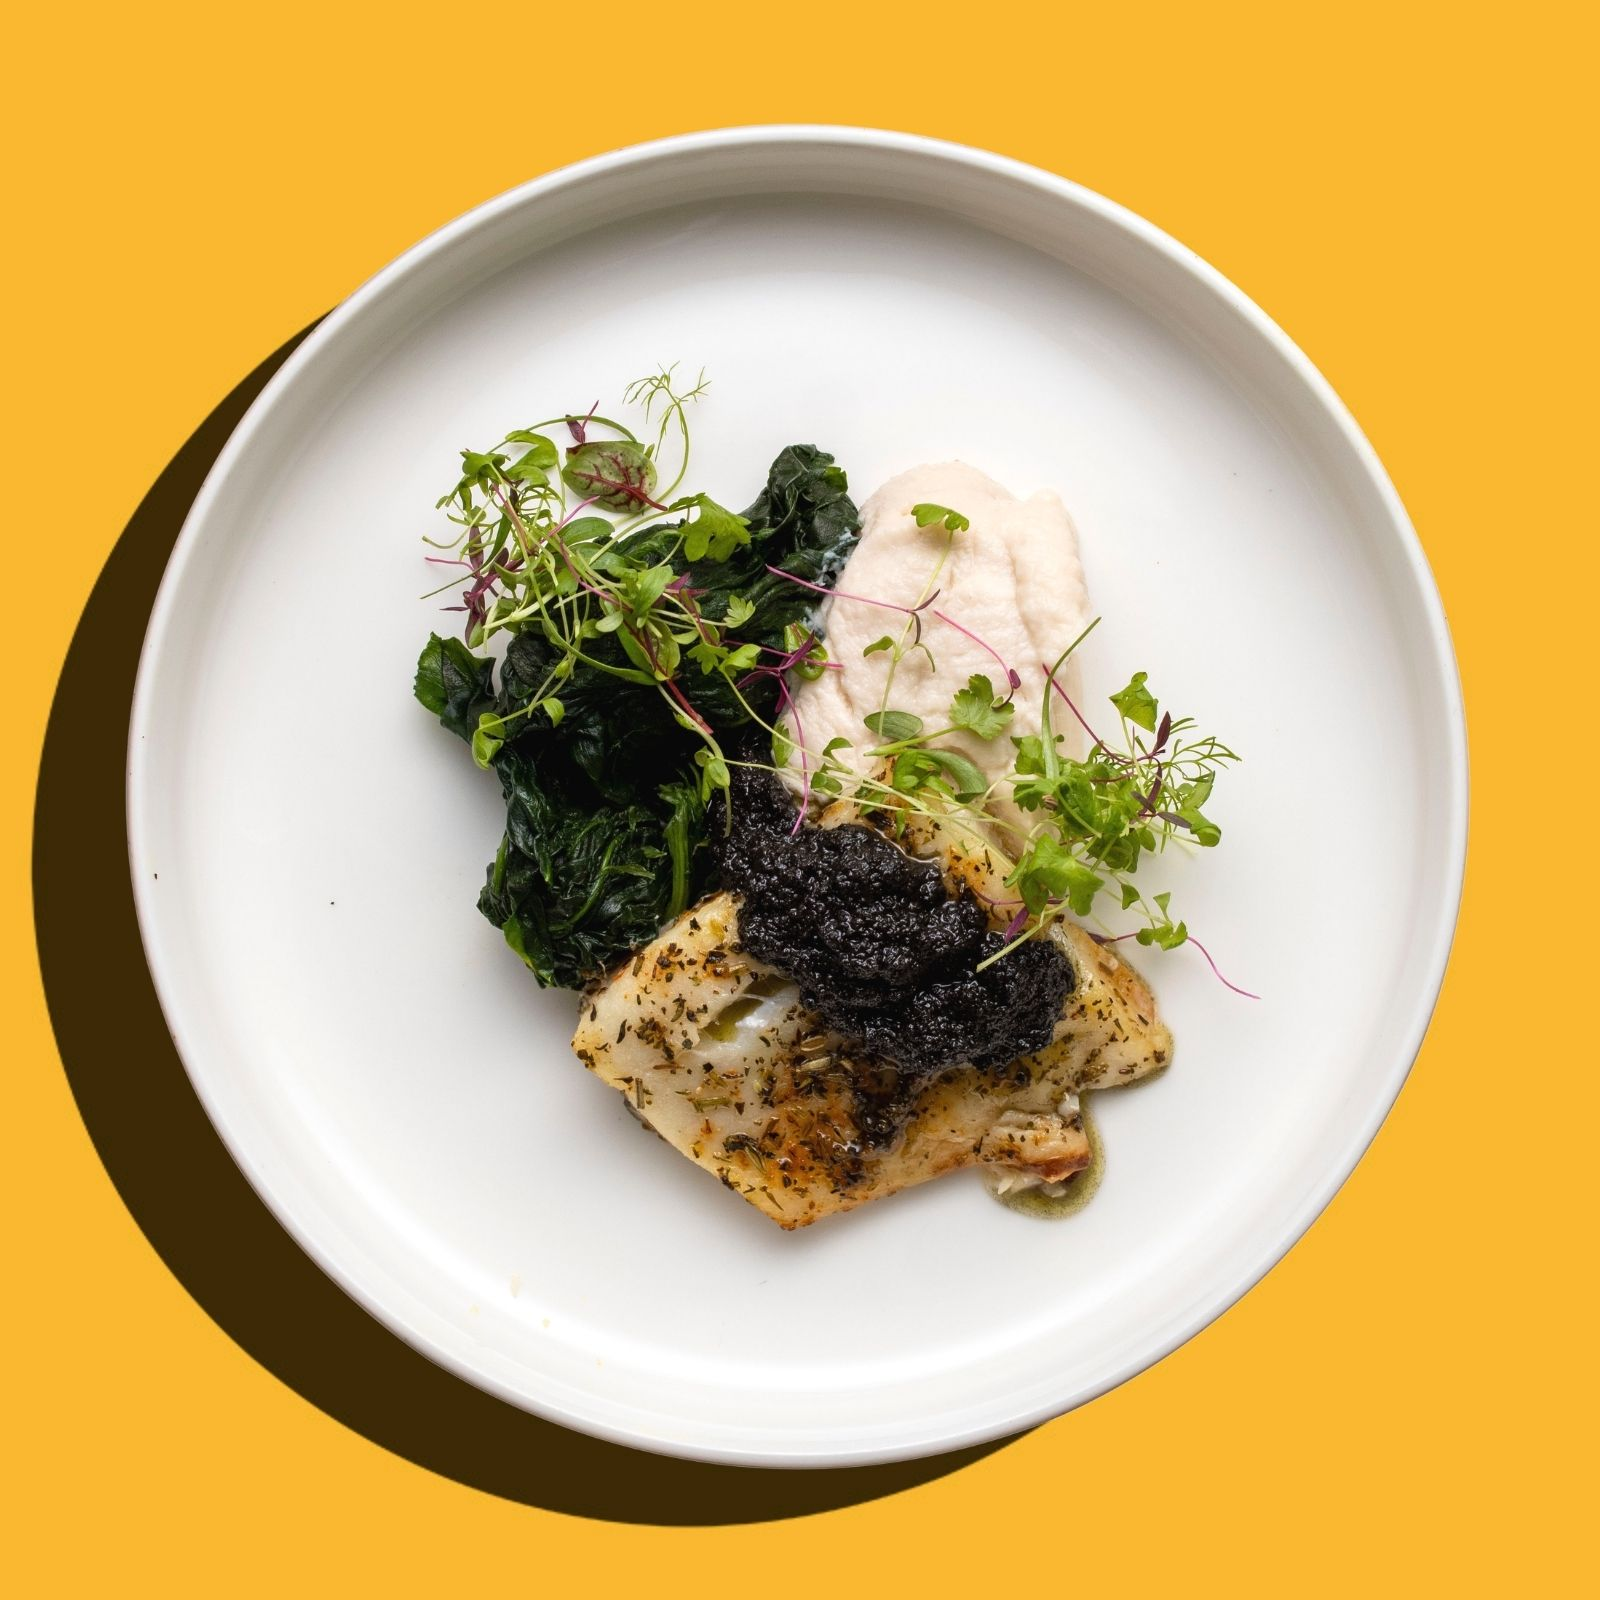 Baked Atlantic Cod Fish with Olive Tapenade